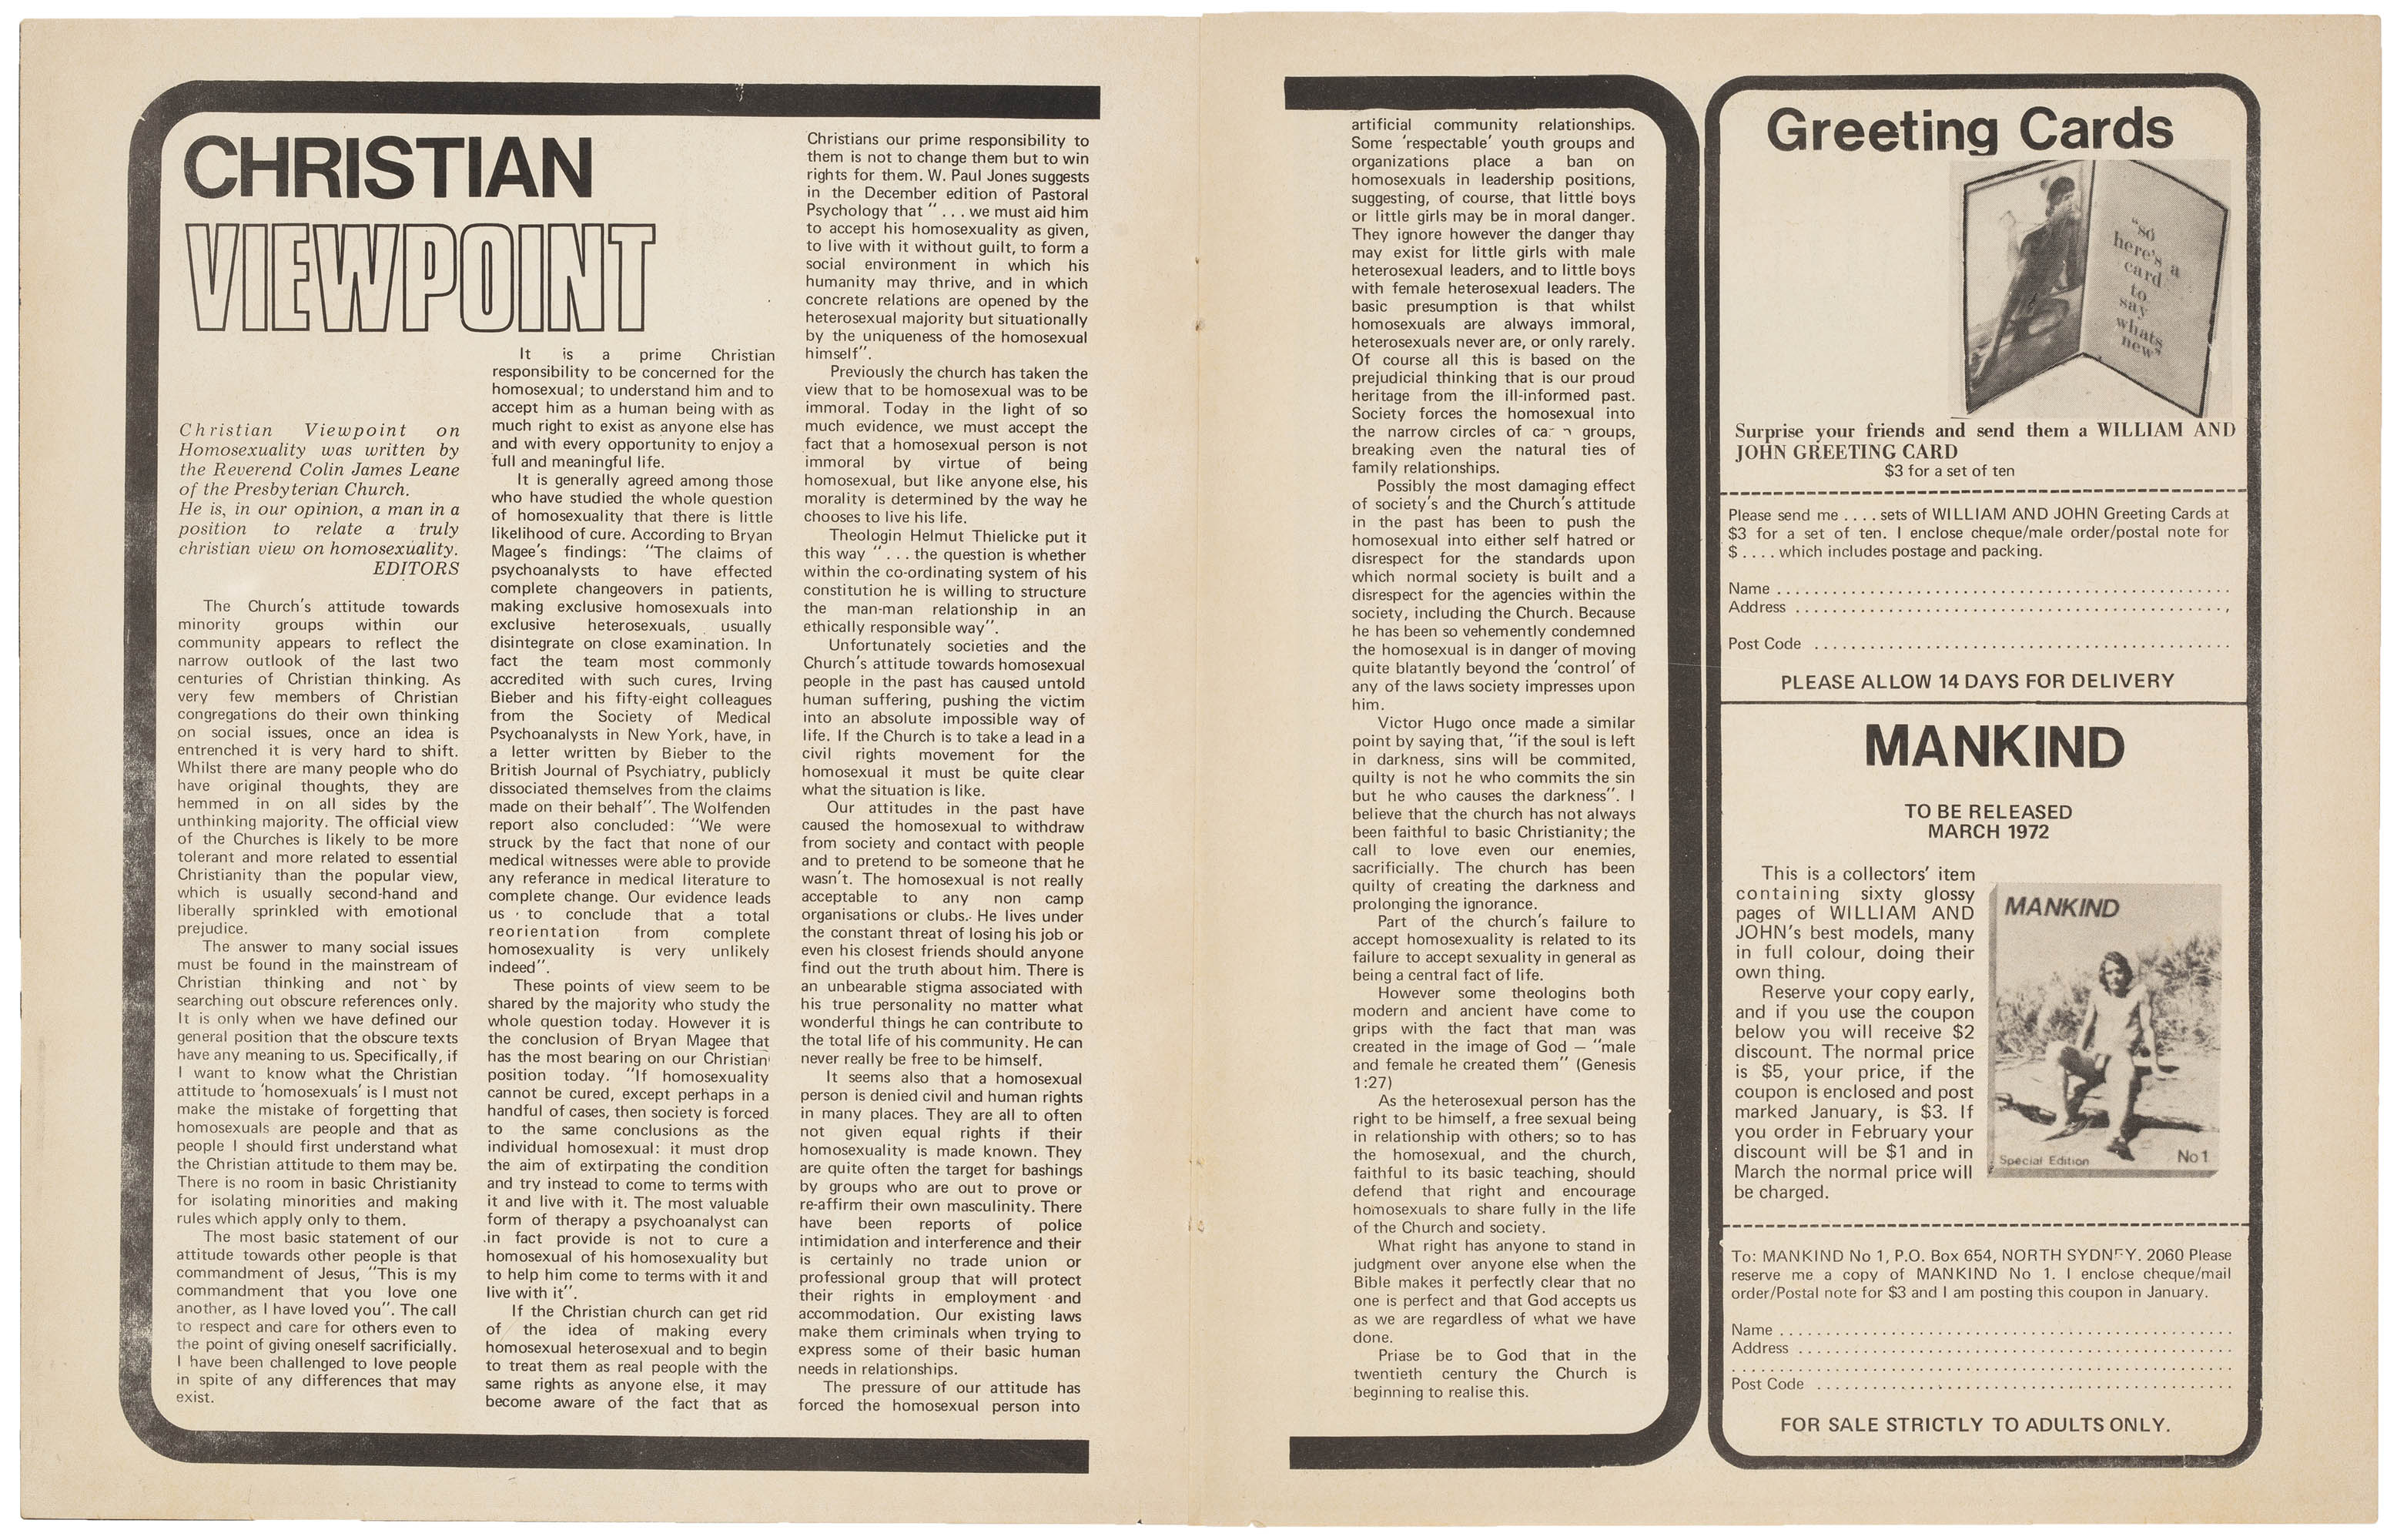 Christian Viewpoint, William and John, Vol 1. no.1